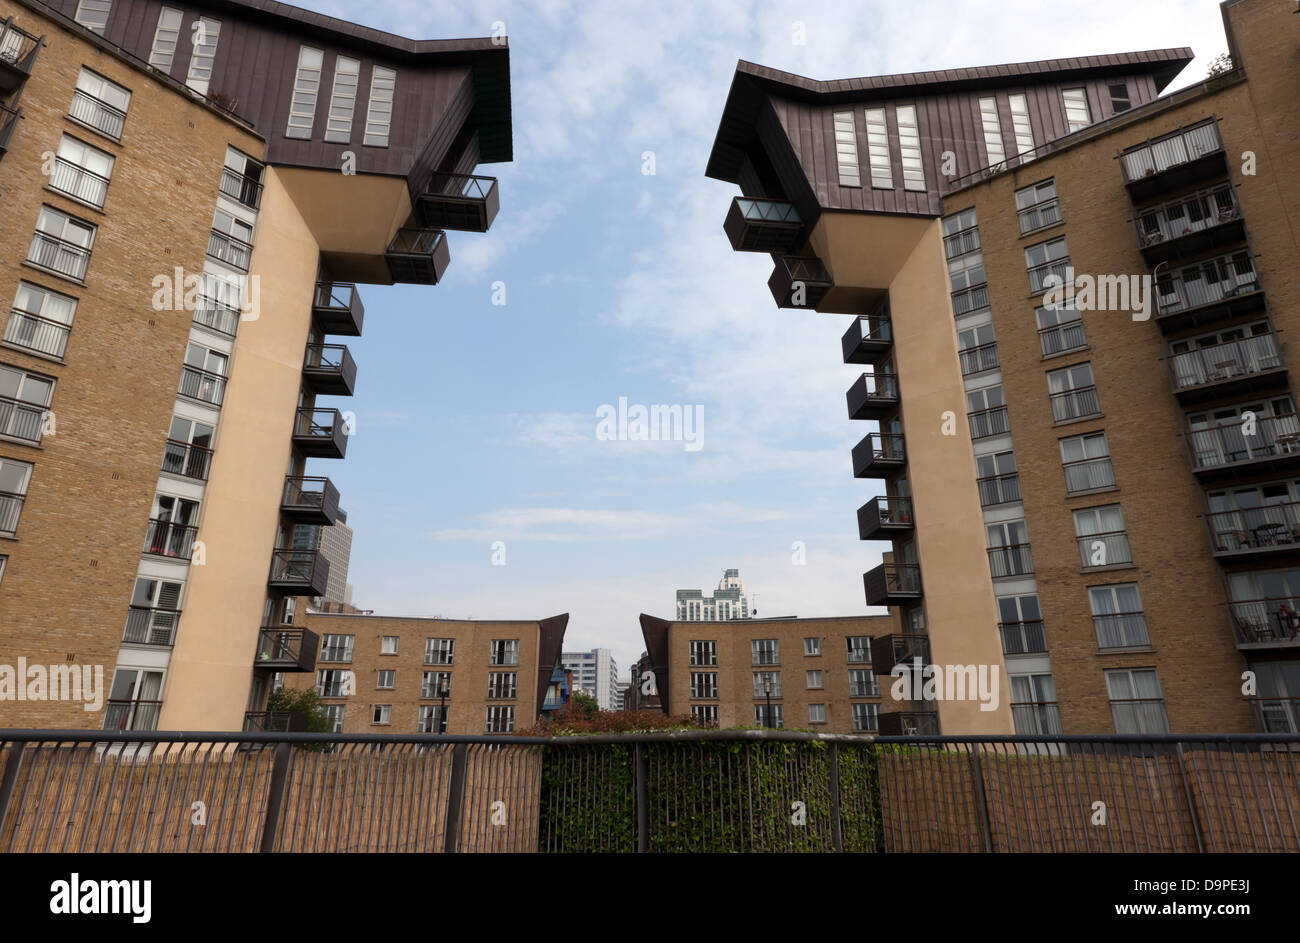 View of the Waterman Building, Millennium Harbour, Westferry Road E14 - Stock Image